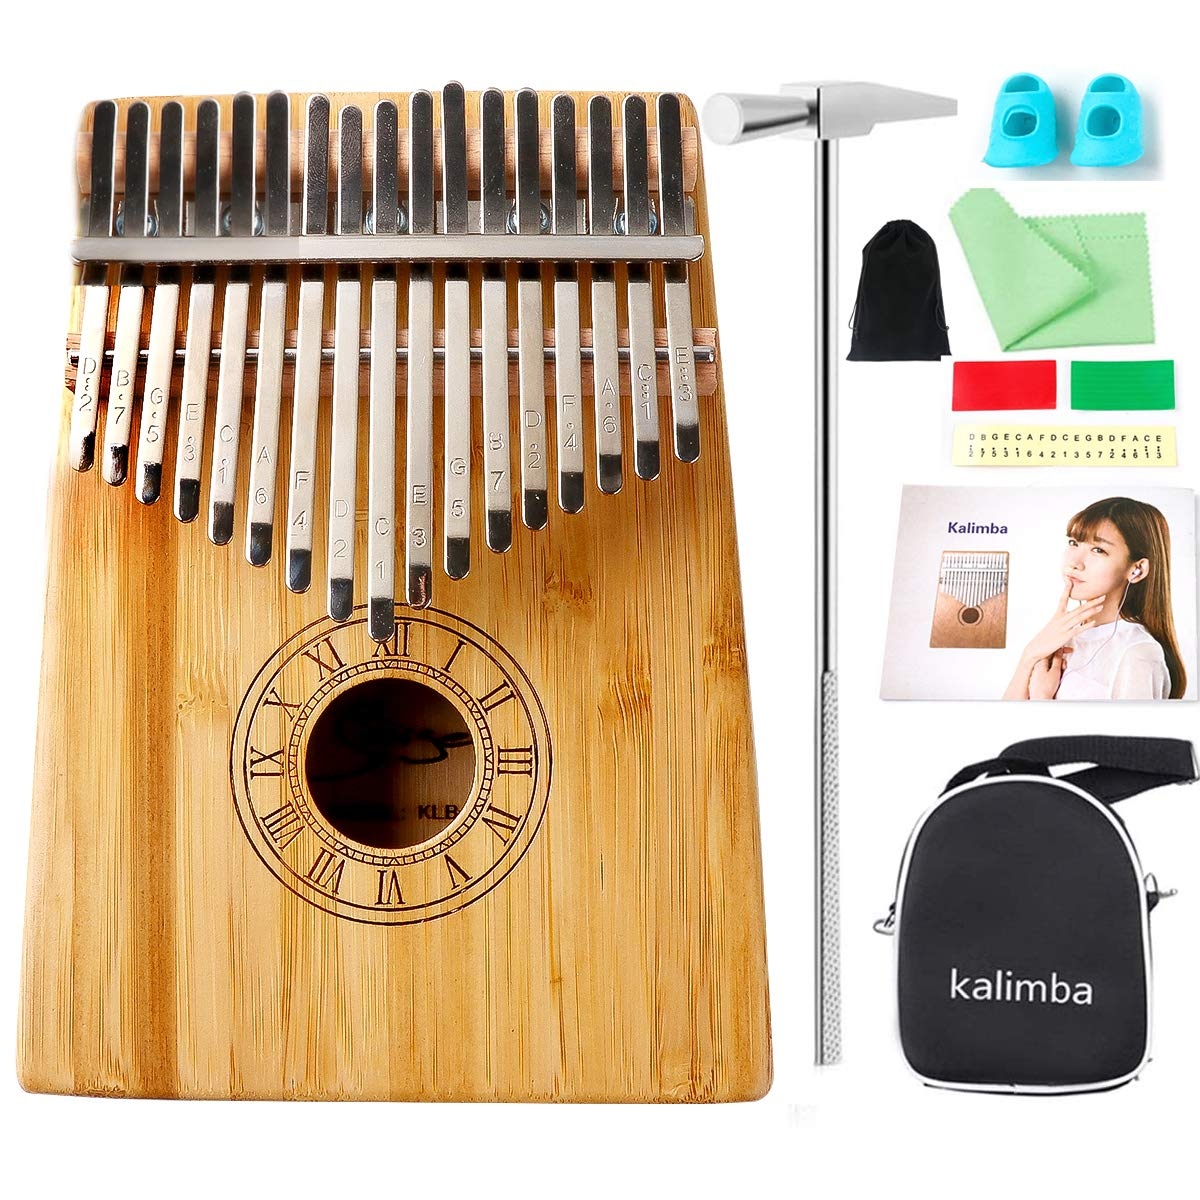 Smiger Kalimba 17 key Solid Bamaboo Wood High Gloss Thumb Piano Kalimbas Mini Musical Instrument with Tune Hammer Carrying Bag Study Book Portable Hand Piano for birthday party